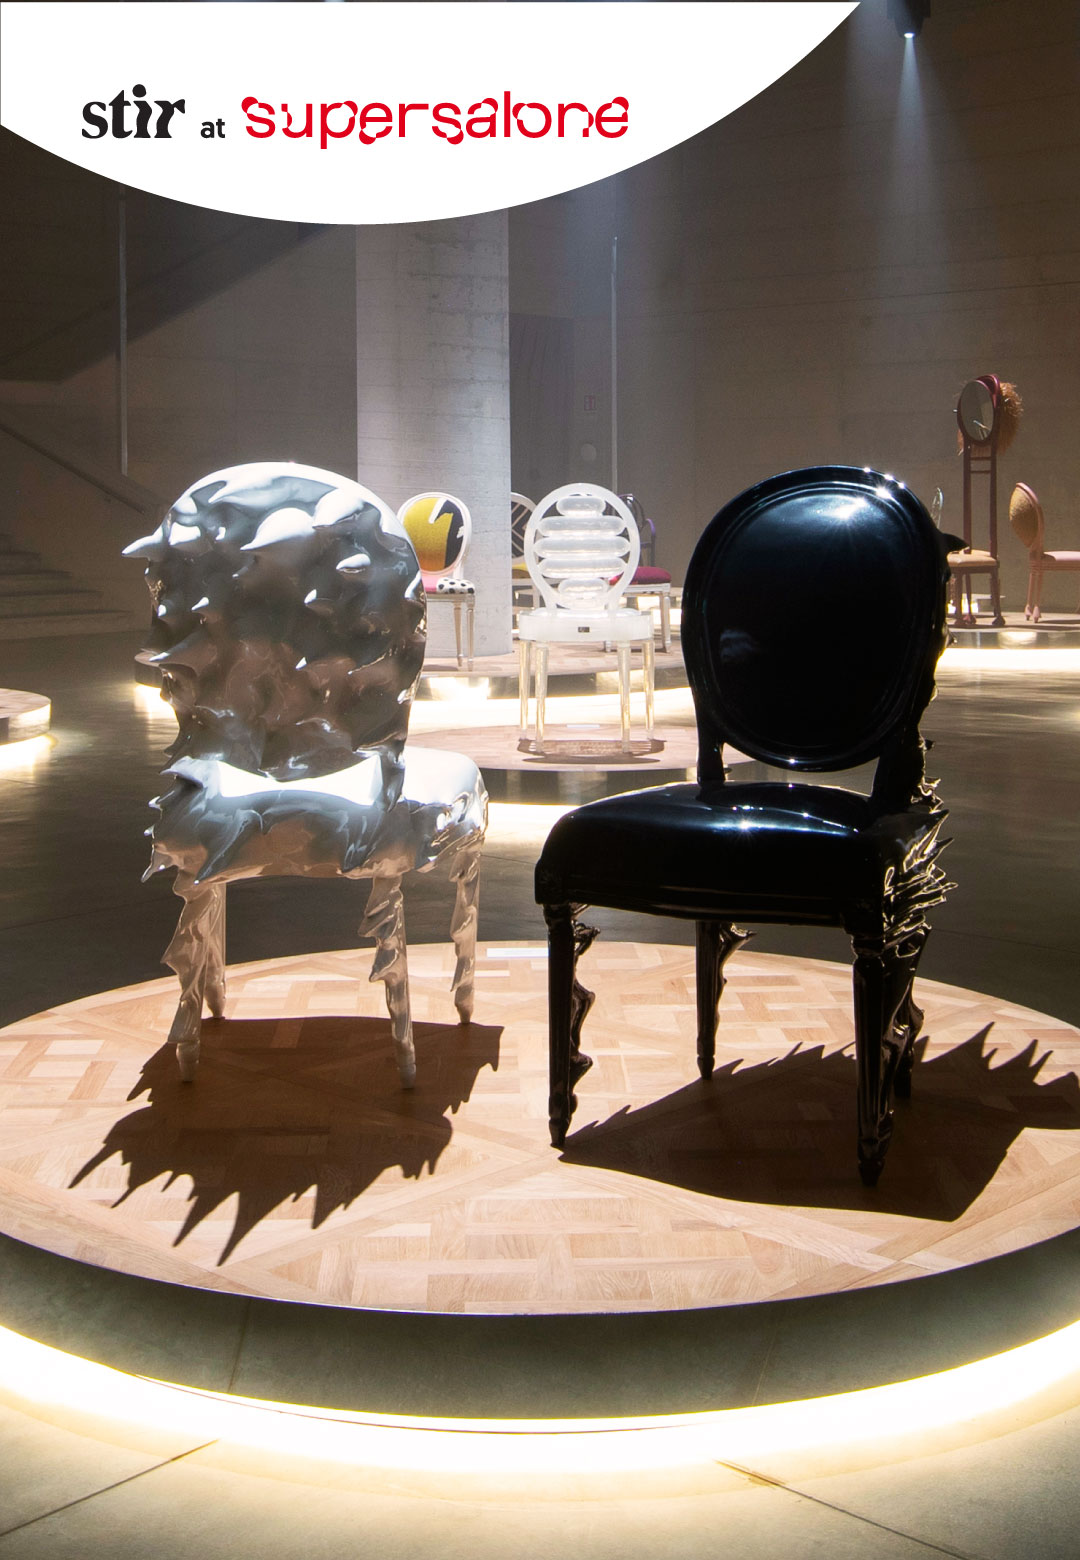 Iconic Dior Medallion chair reimagined by 17 artists and designers at Supersalone | The Dior Medallion chair reimagined at Milan Design Week 2021 | STIRworld